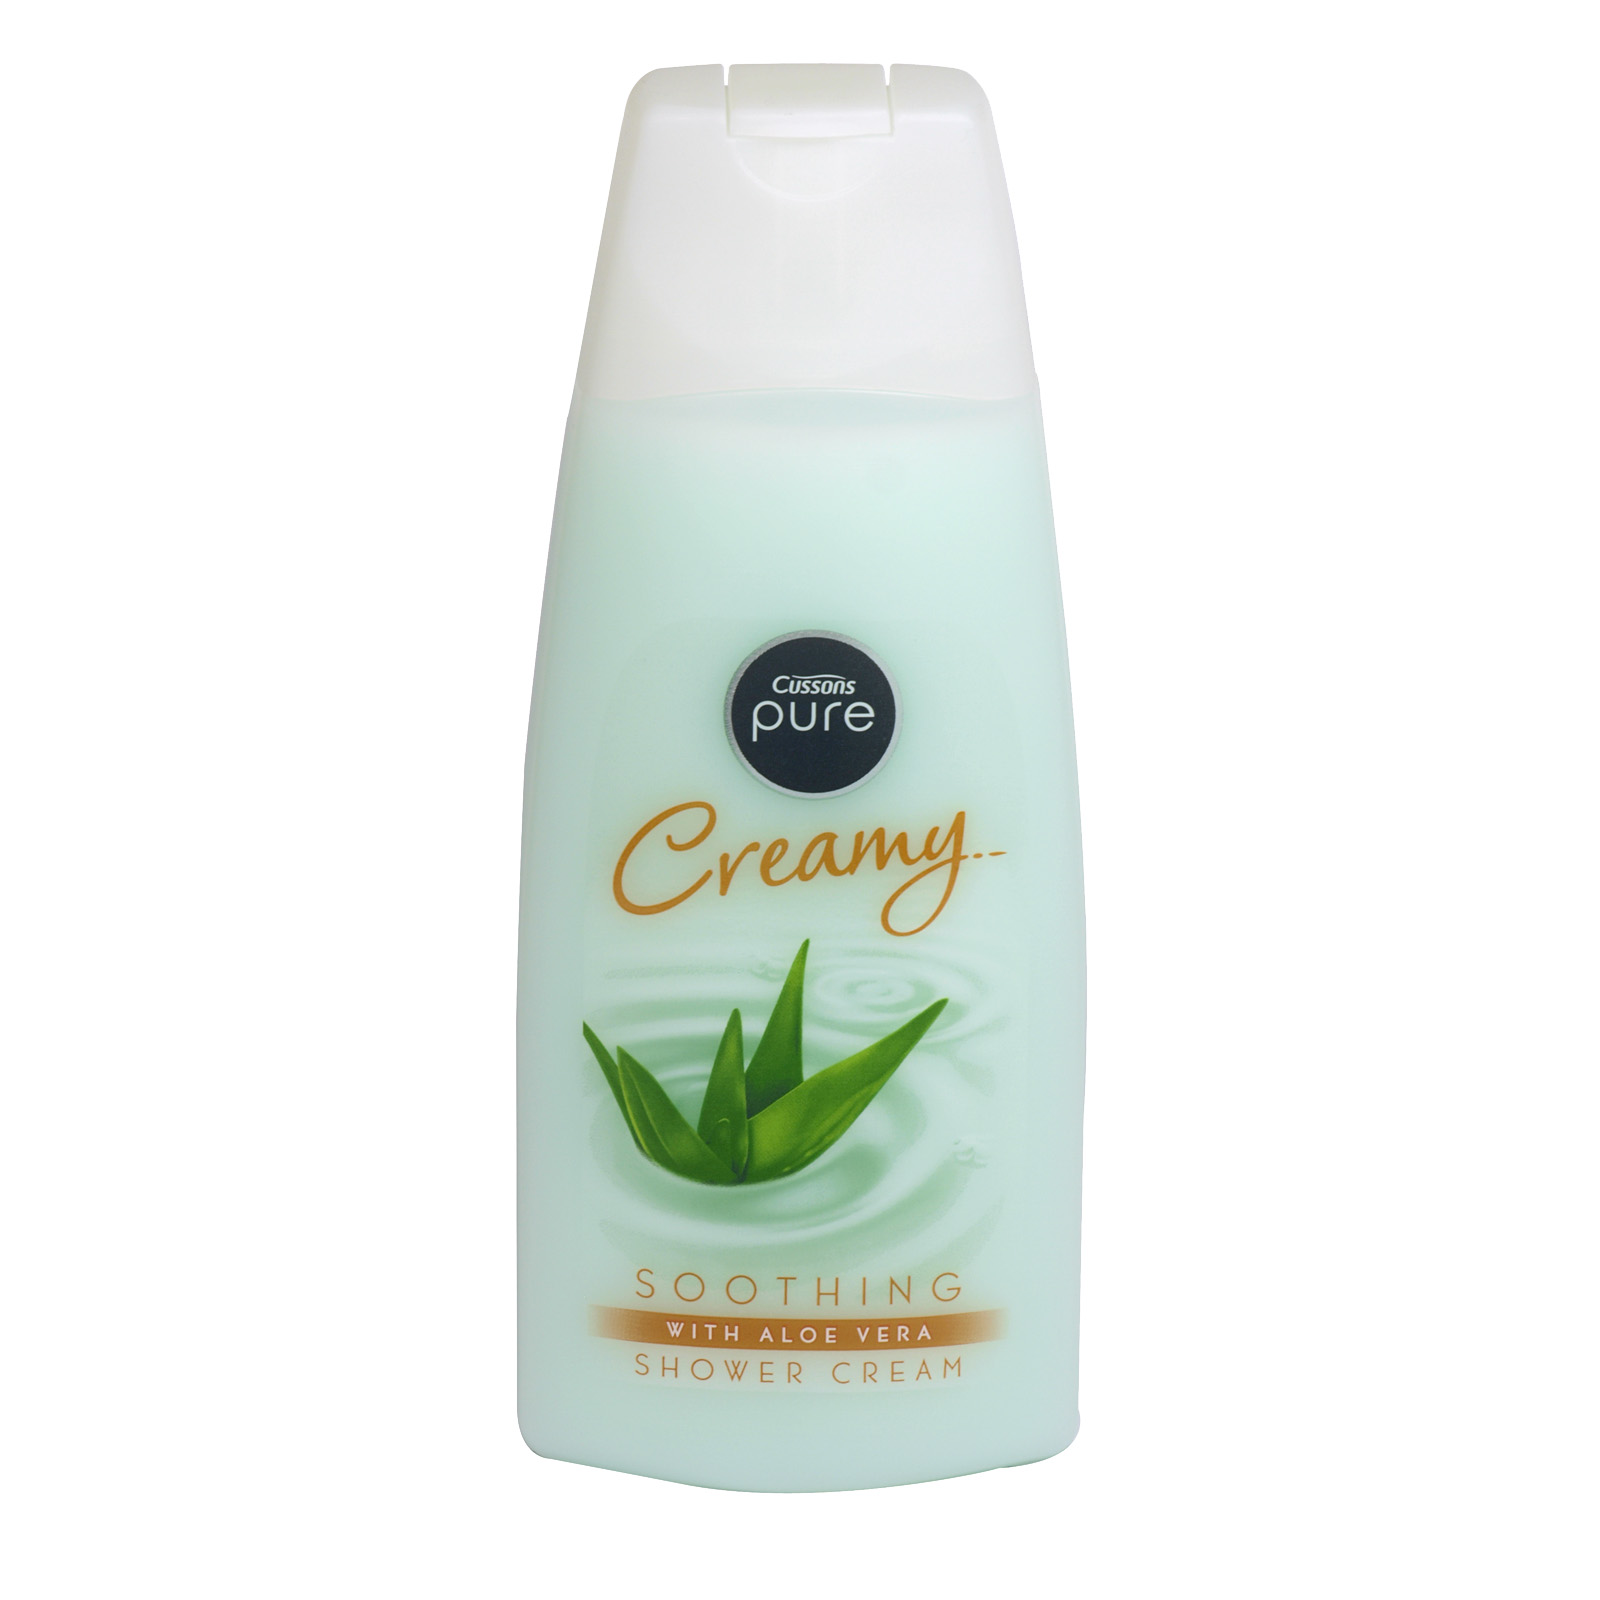 CUSSONS PURE SHOWER CREAM SOOTHING ALOE VERA X6